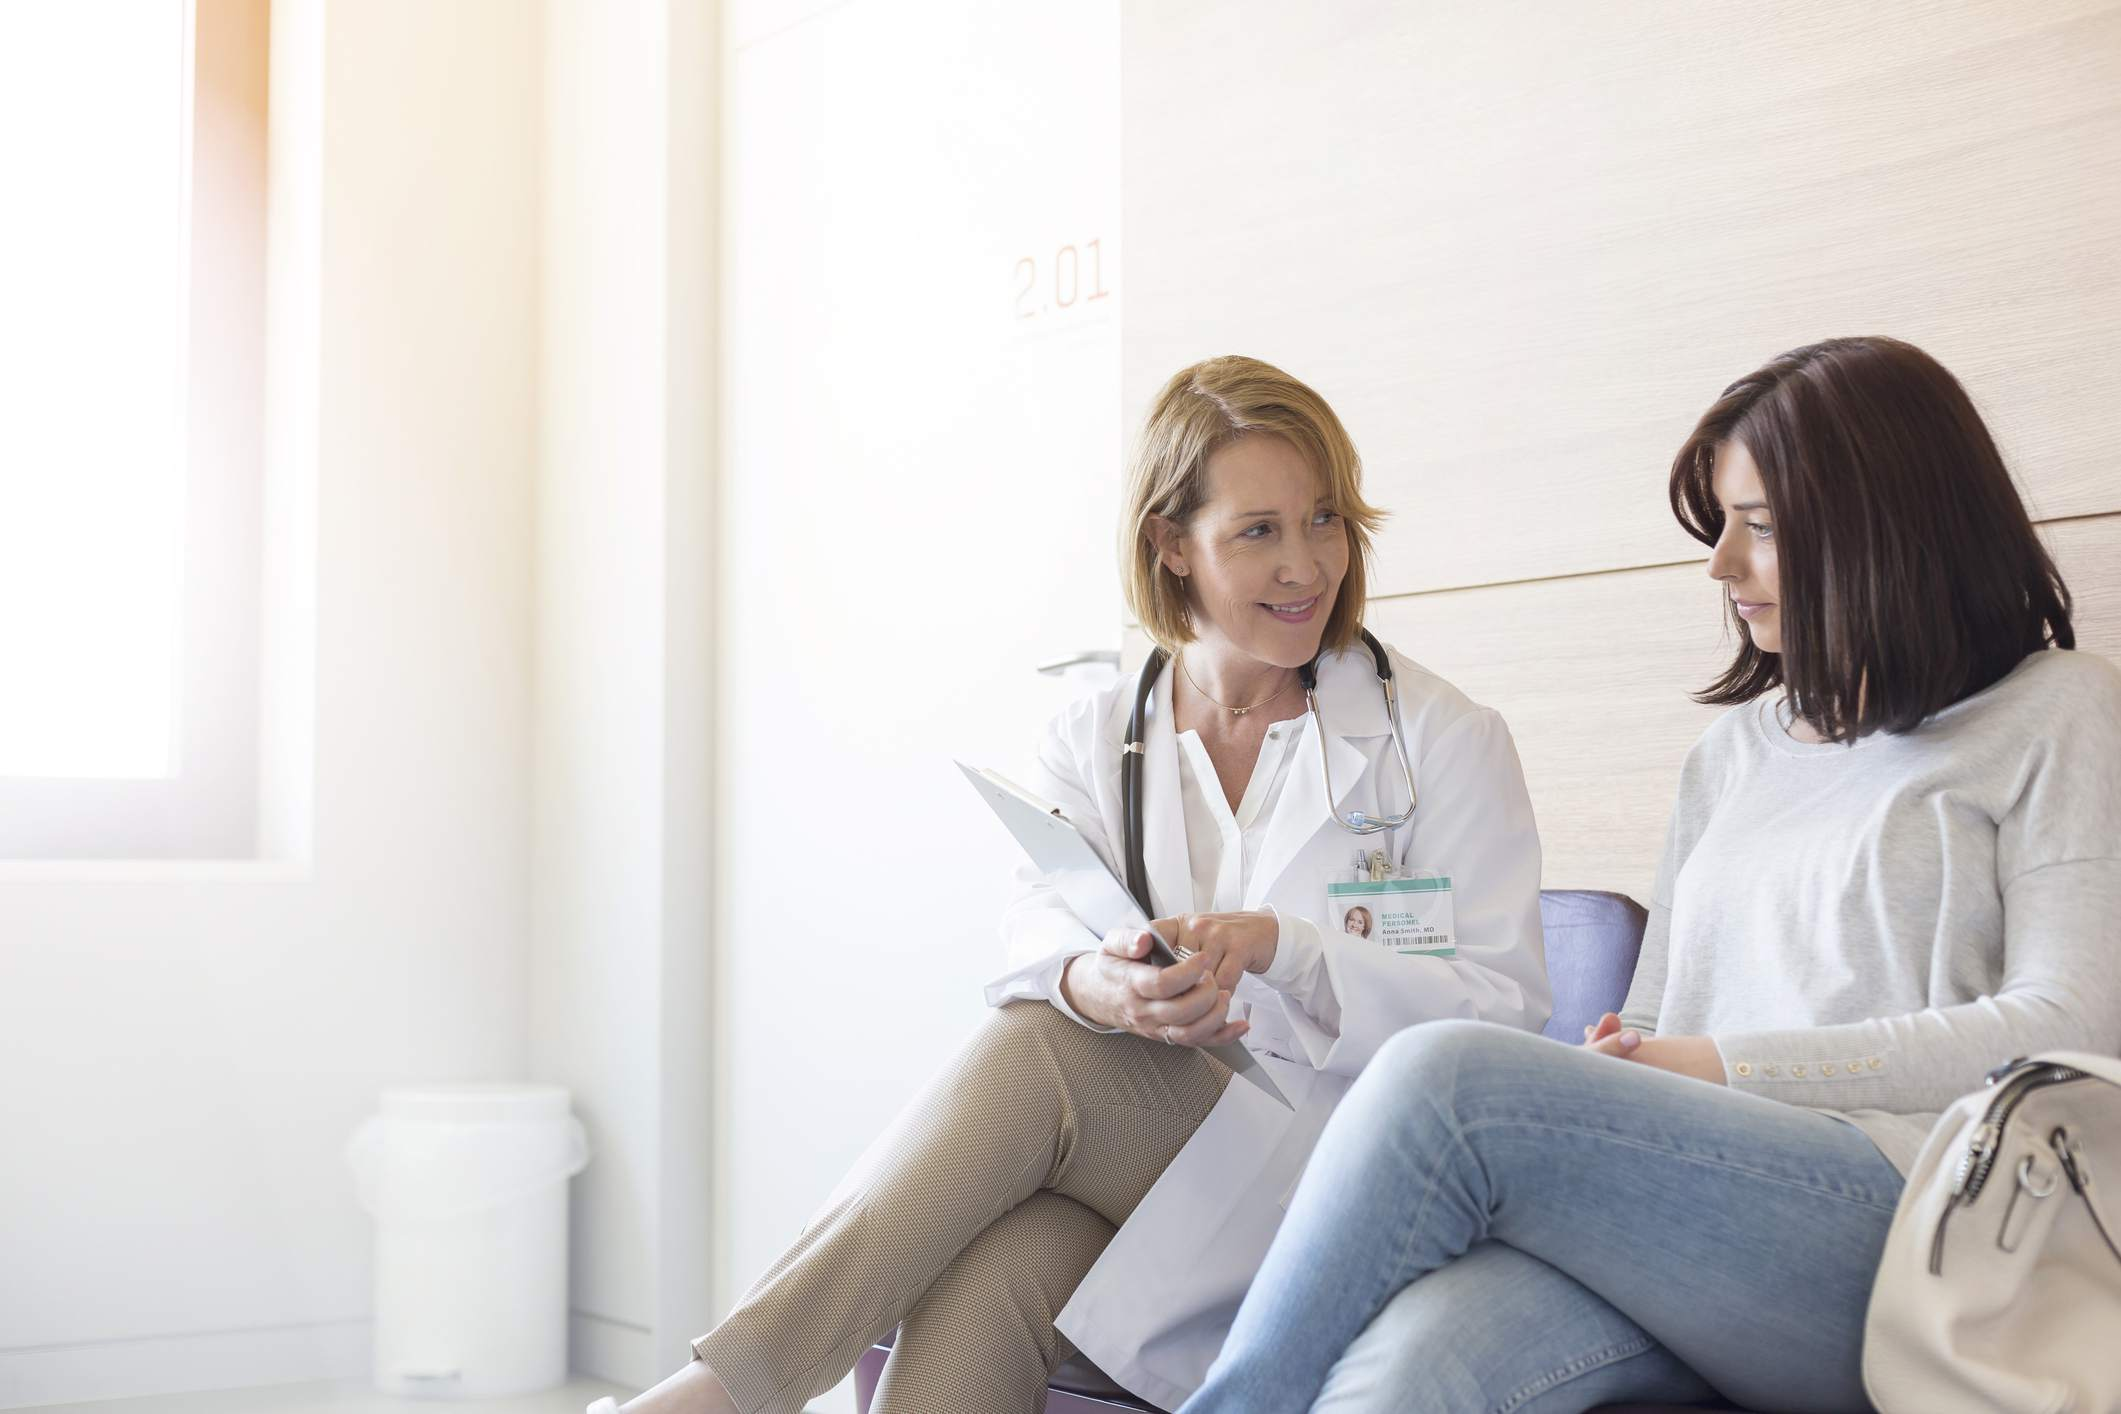 Doctor and patient reviewing medical file